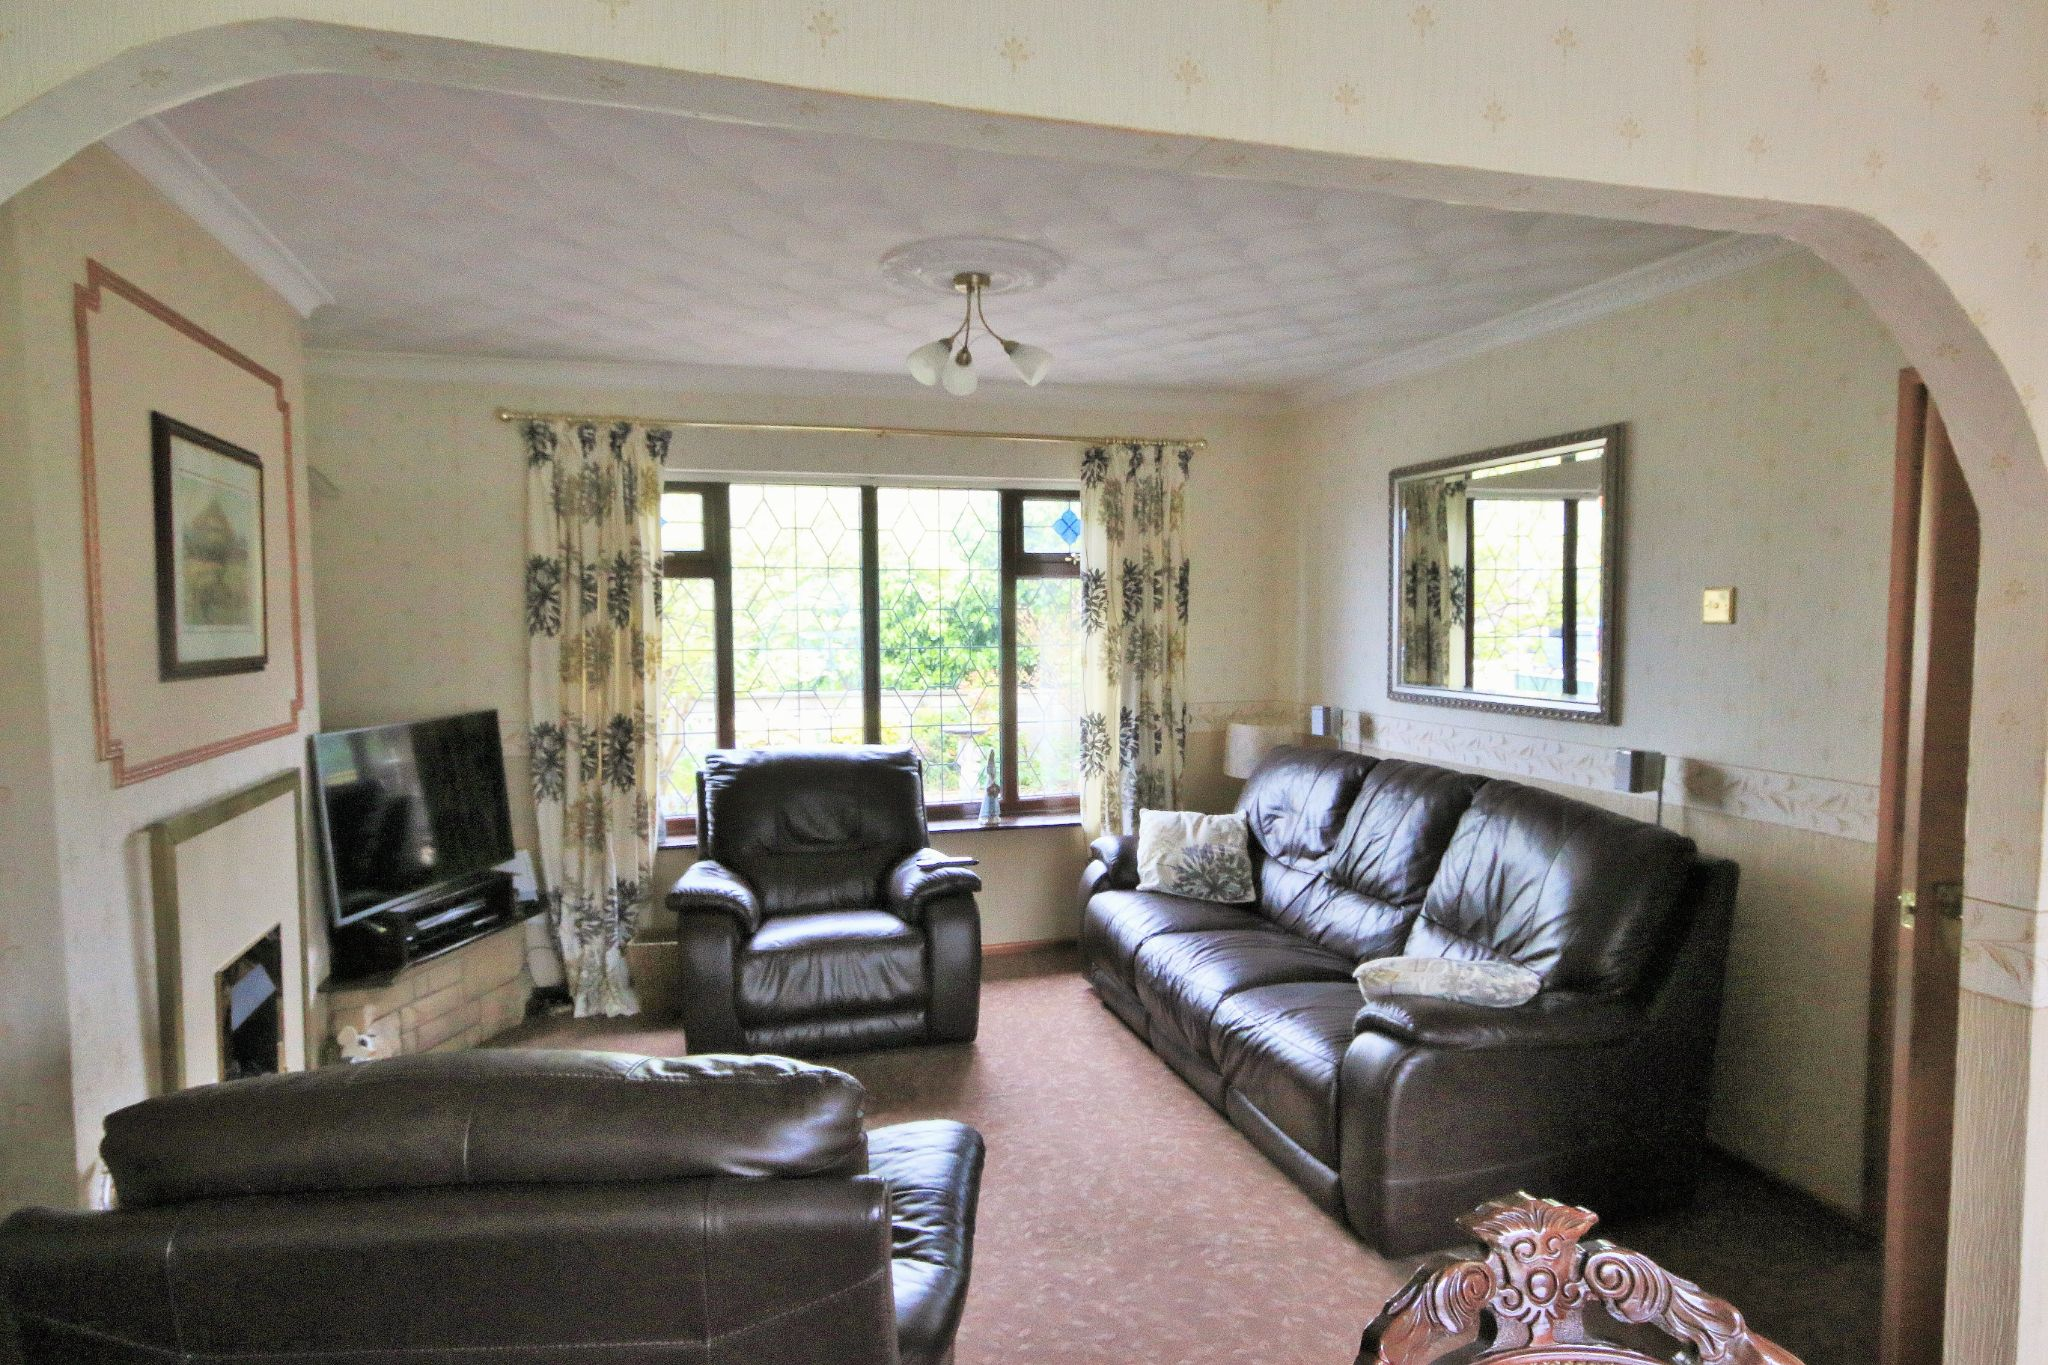 2 Bedroom Detached House For Sale - Photograph 2